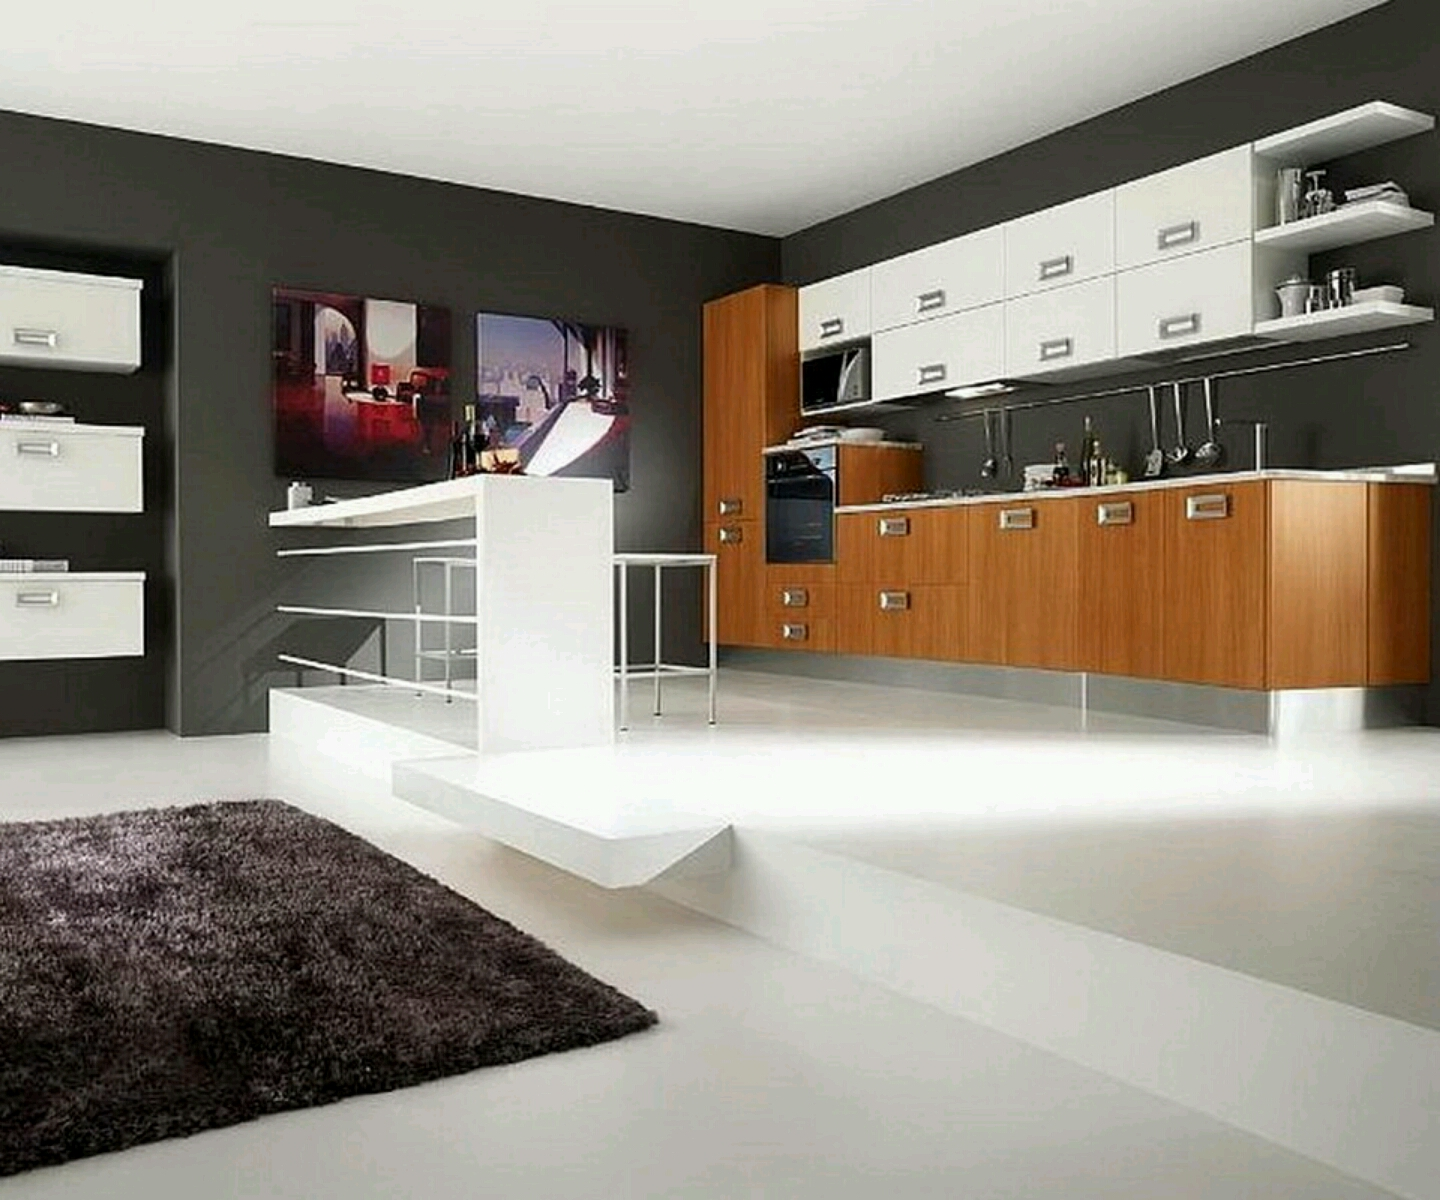 New home designs latest ultra modern kitchen designs ideas for Kichan dizain